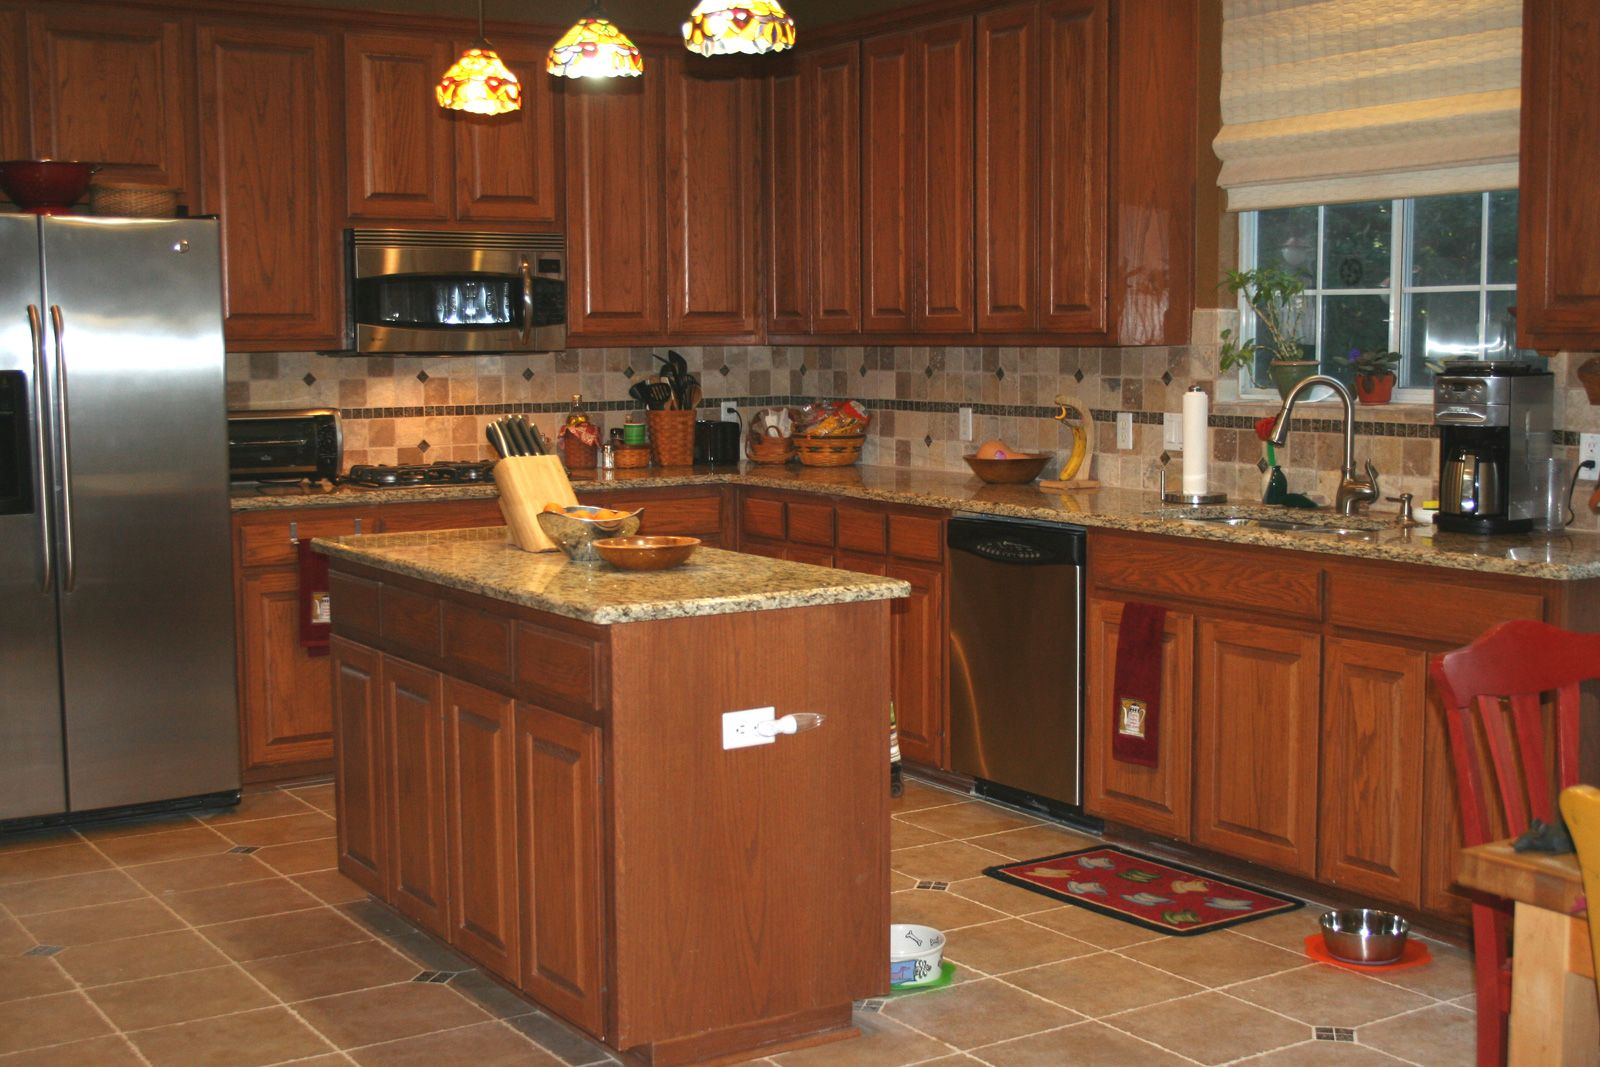 Kitchen Backsplash For Oak Cabinets back splash designs for kitchen with beige and brown granite